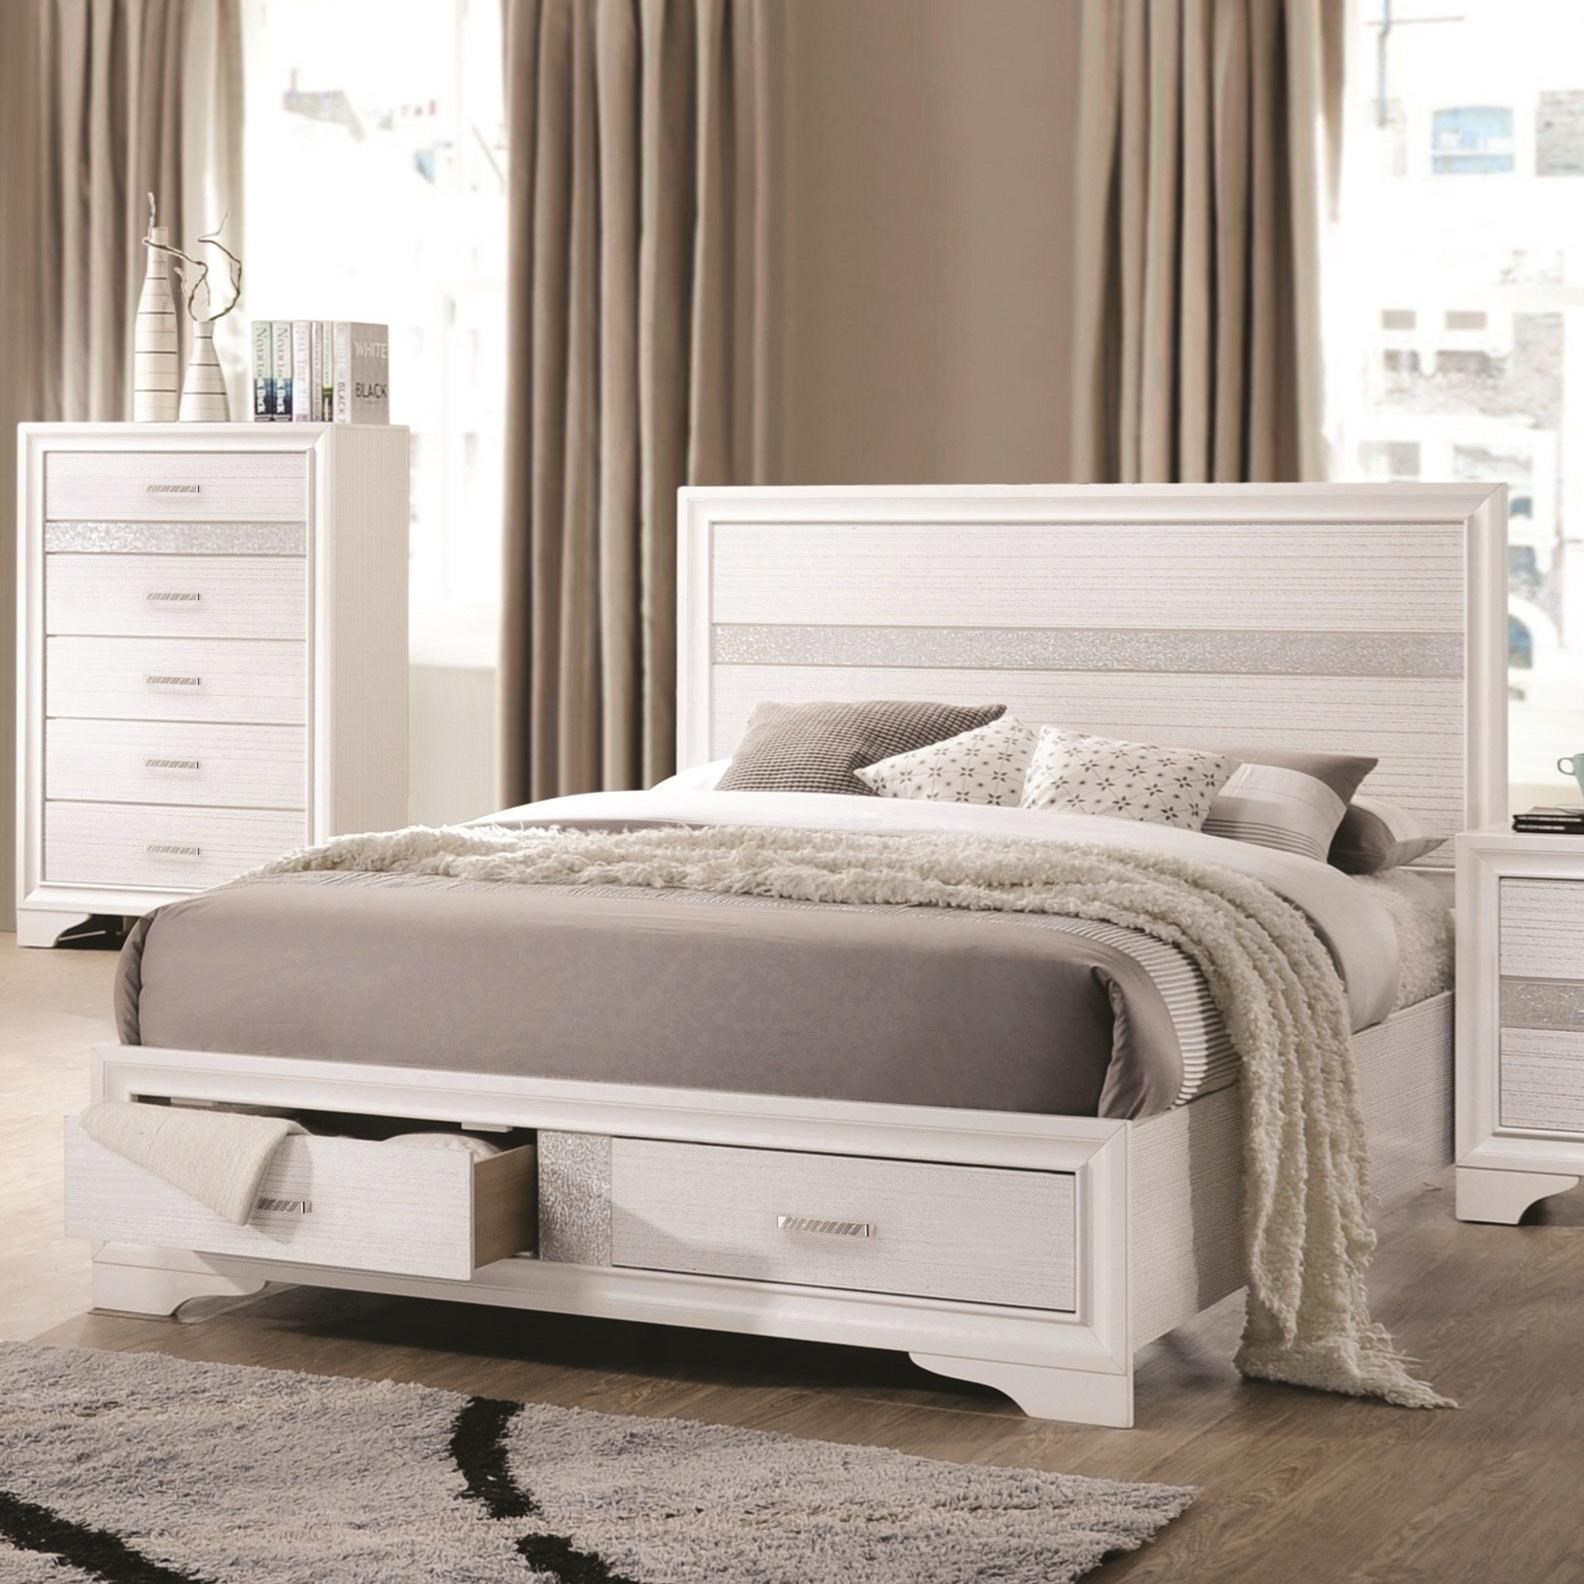 Coaster Miranda Queen Storage Bed With 2 Dovetail Drawers